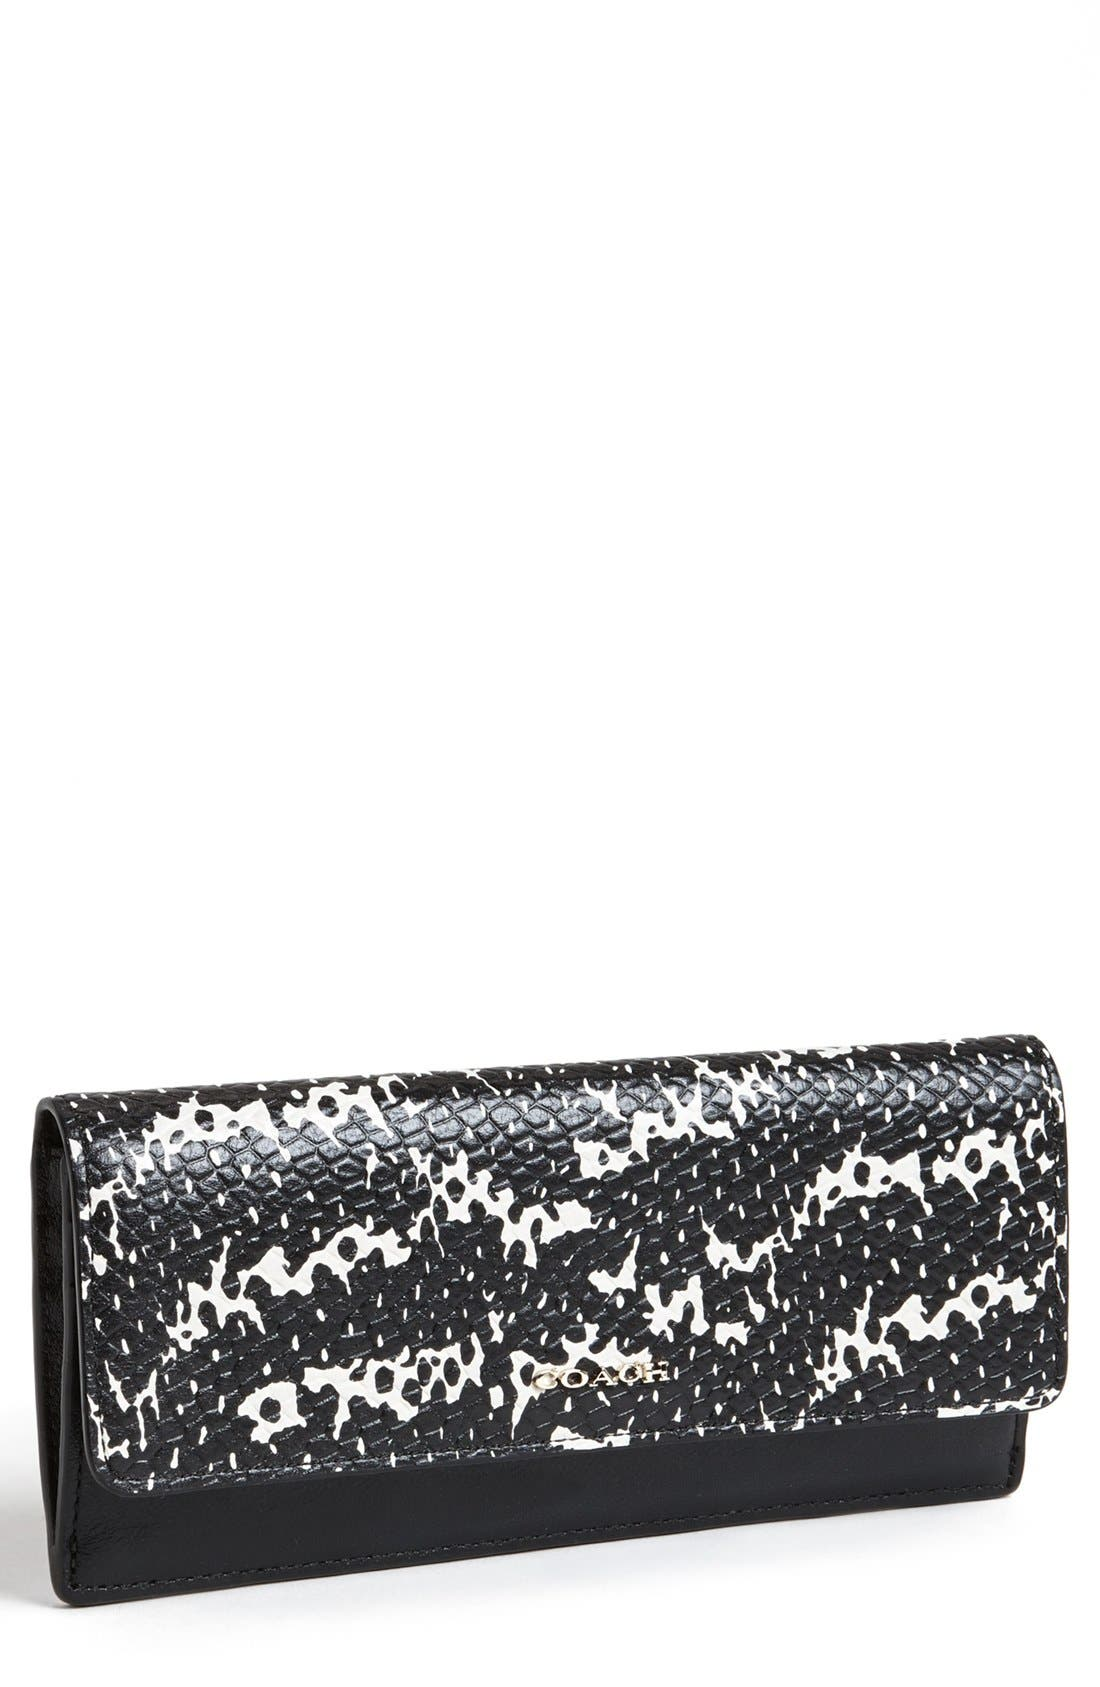 'Madison' Python Embossed Leather Wallet,                             Main thumbnail 1, color,                             018